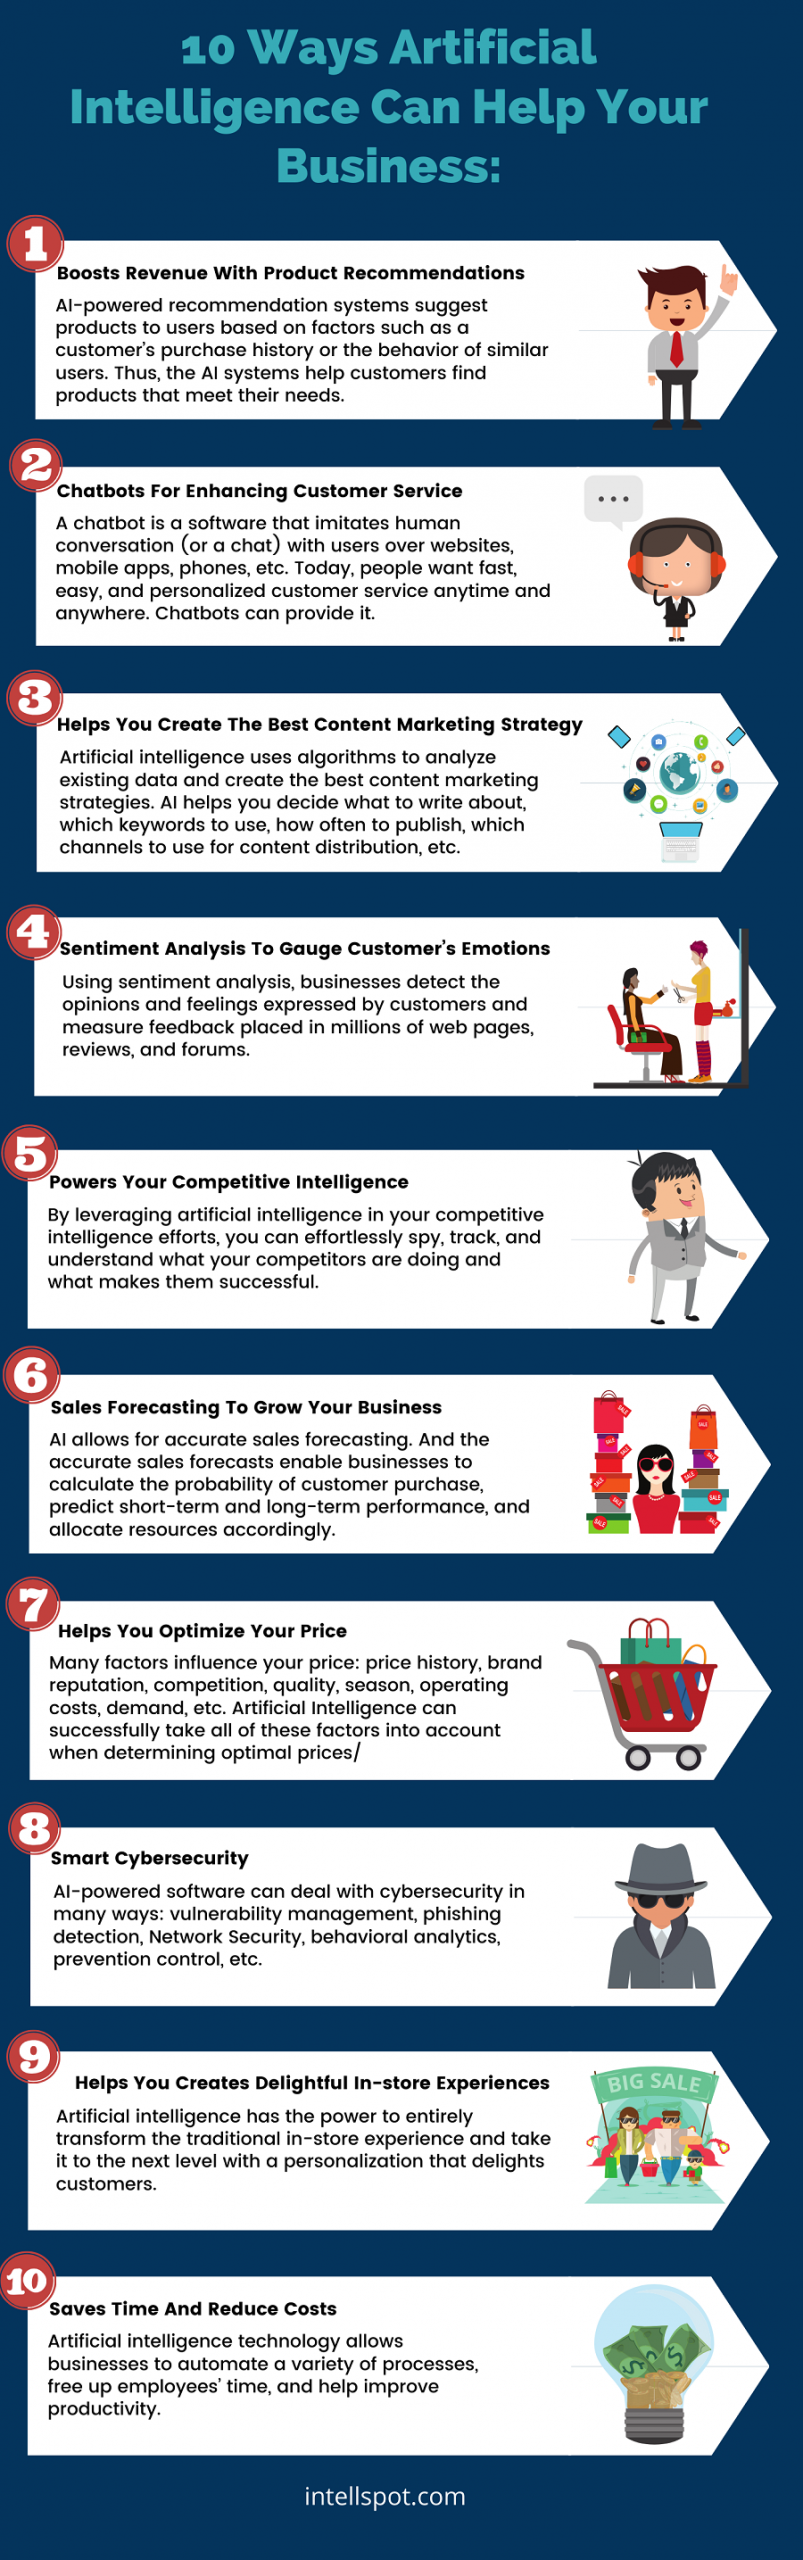 10 Ways Artificial Intelligence Helps Businesses - an infographic